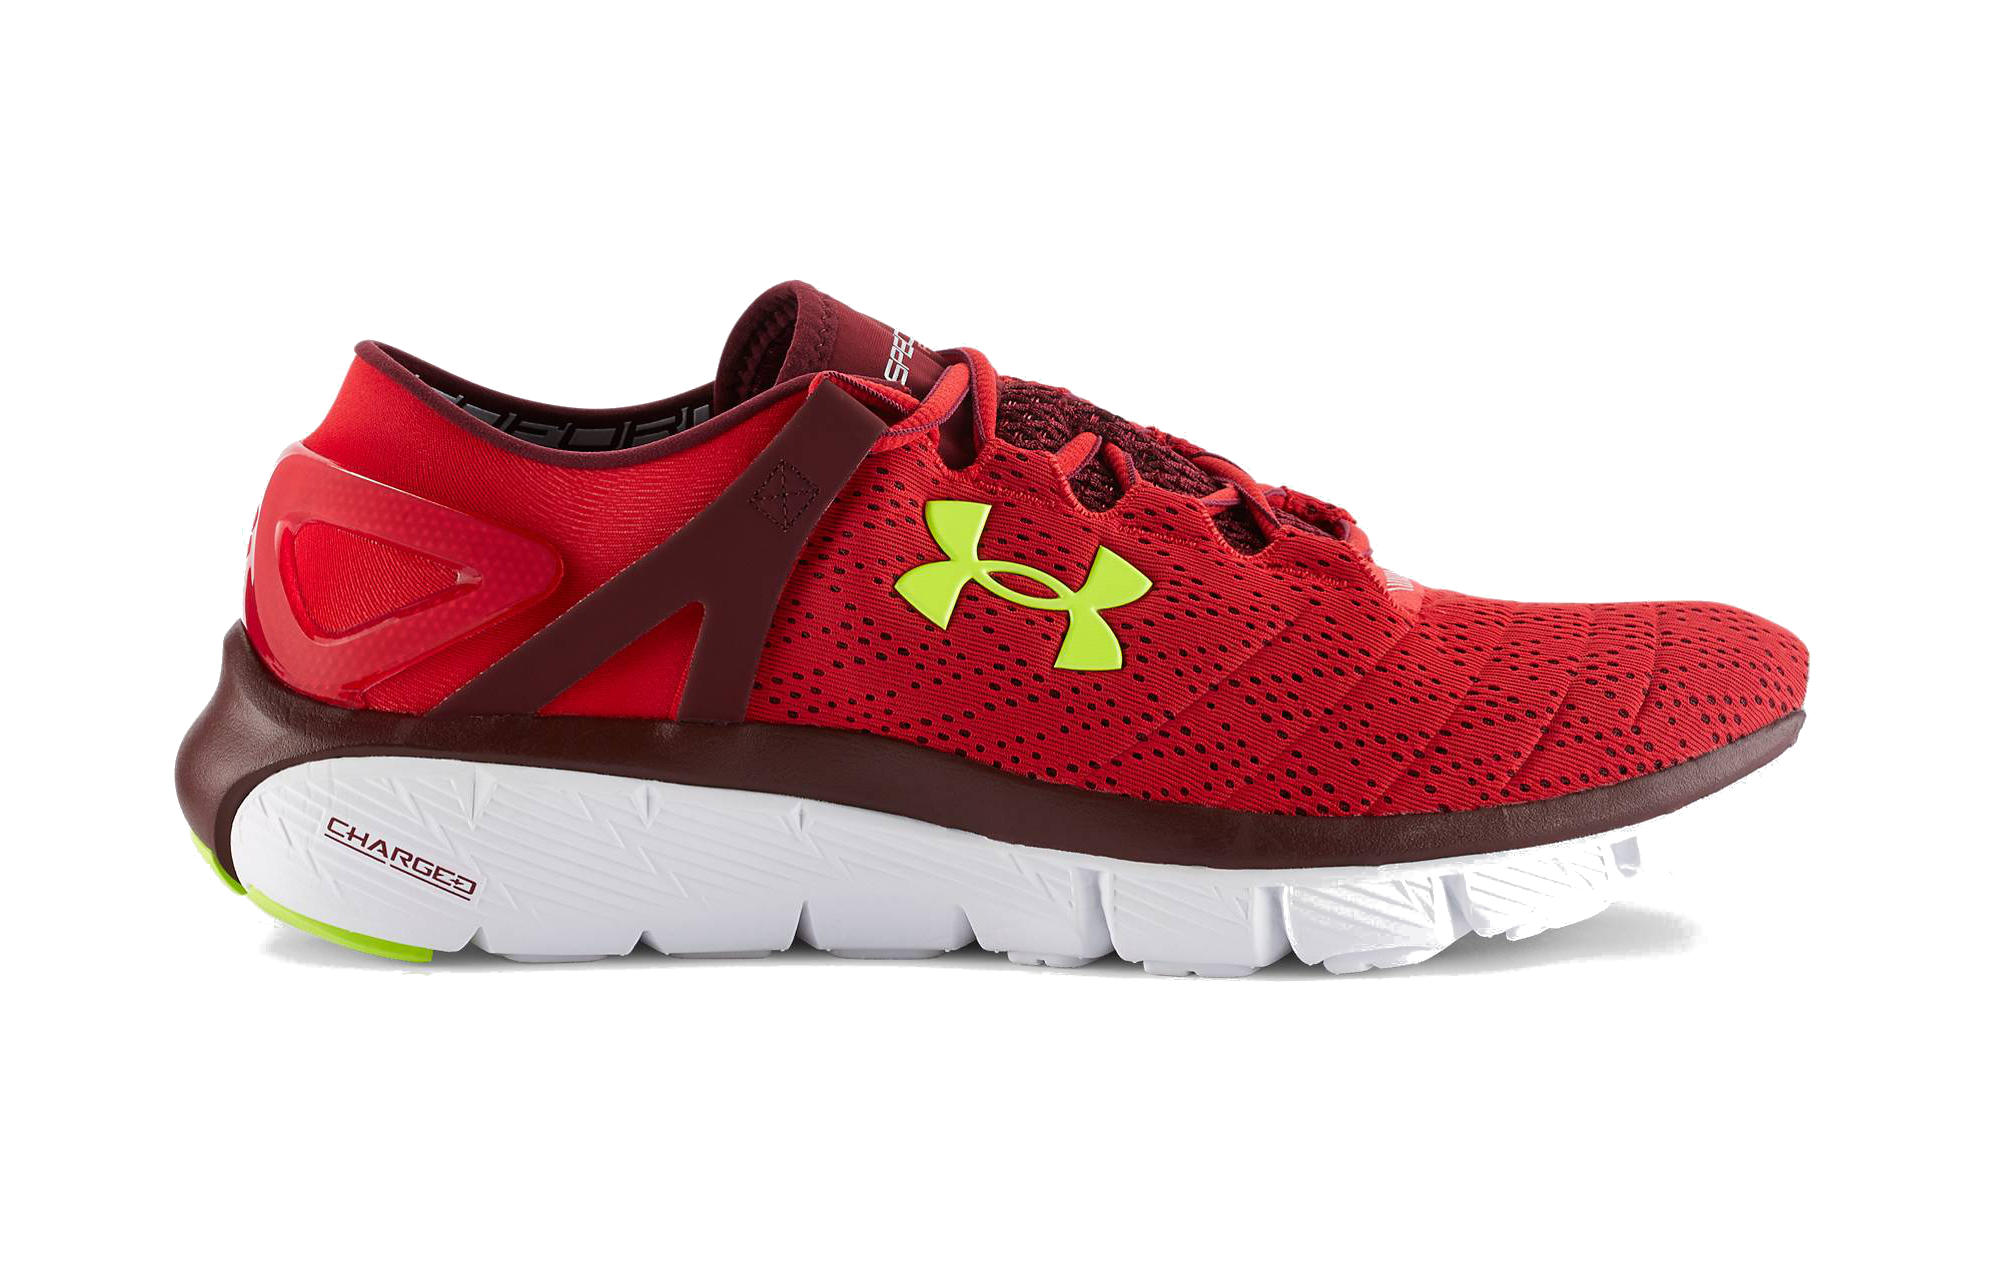 e22189f4a Under Armour SpeedForm Fortis Mens Running Shoes - Red